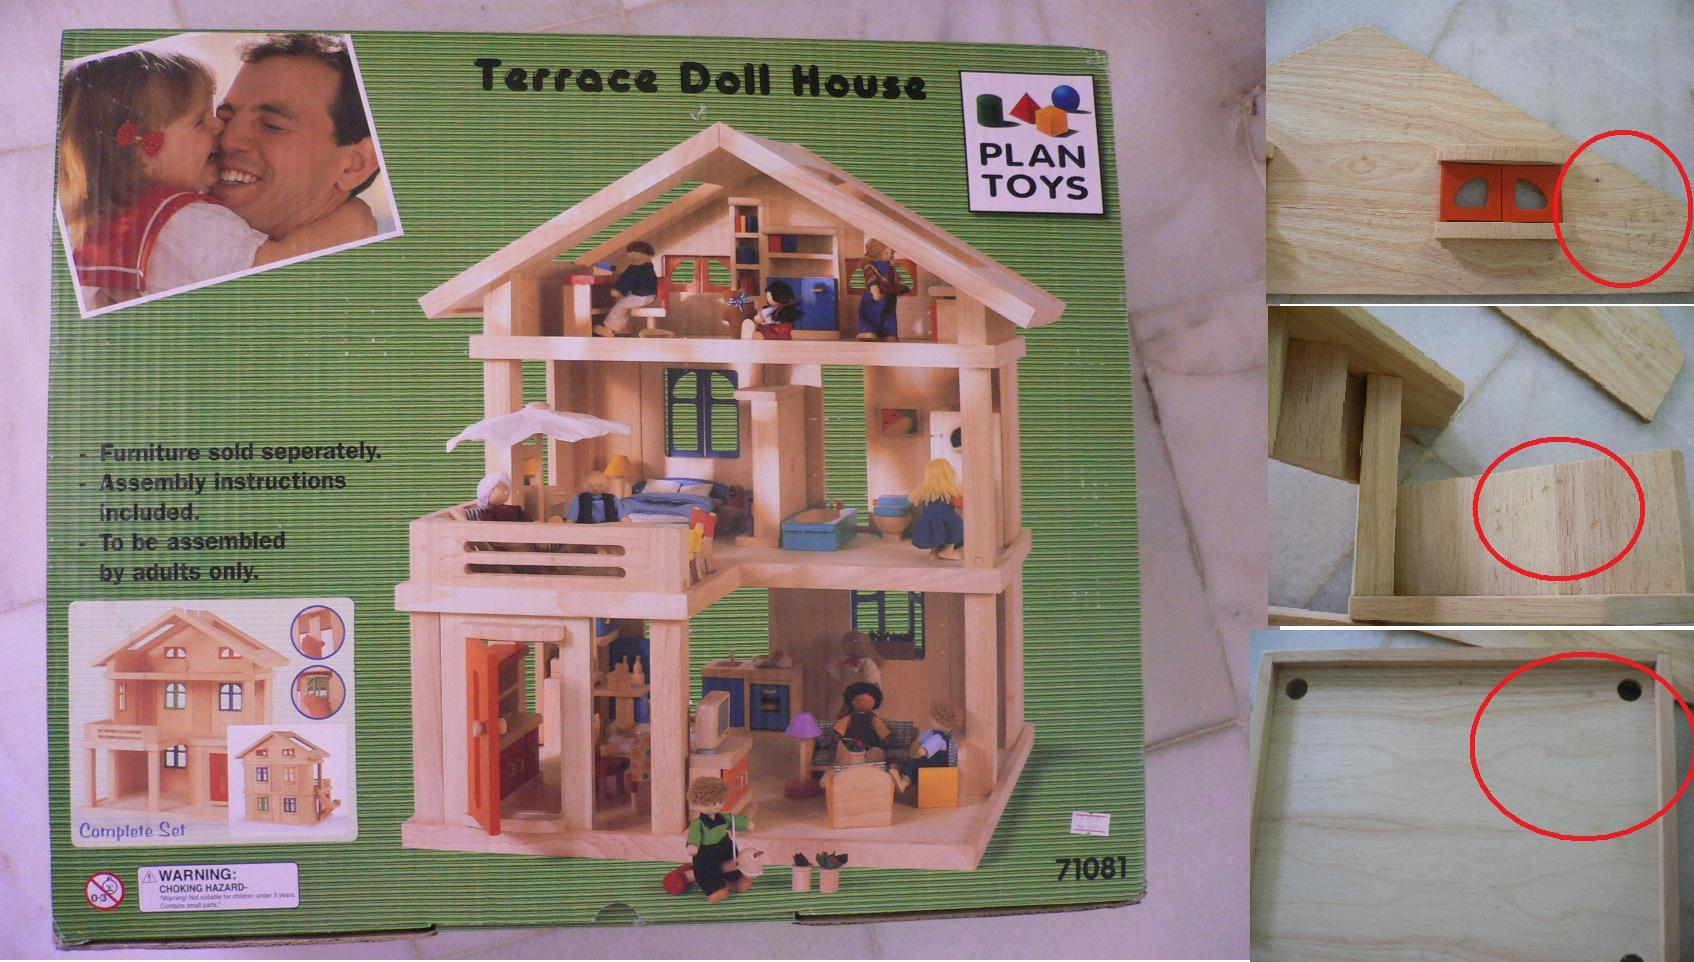 Free Shipping- 'PLAN TOYS' Wooden Terrace Doll House (No.71081)